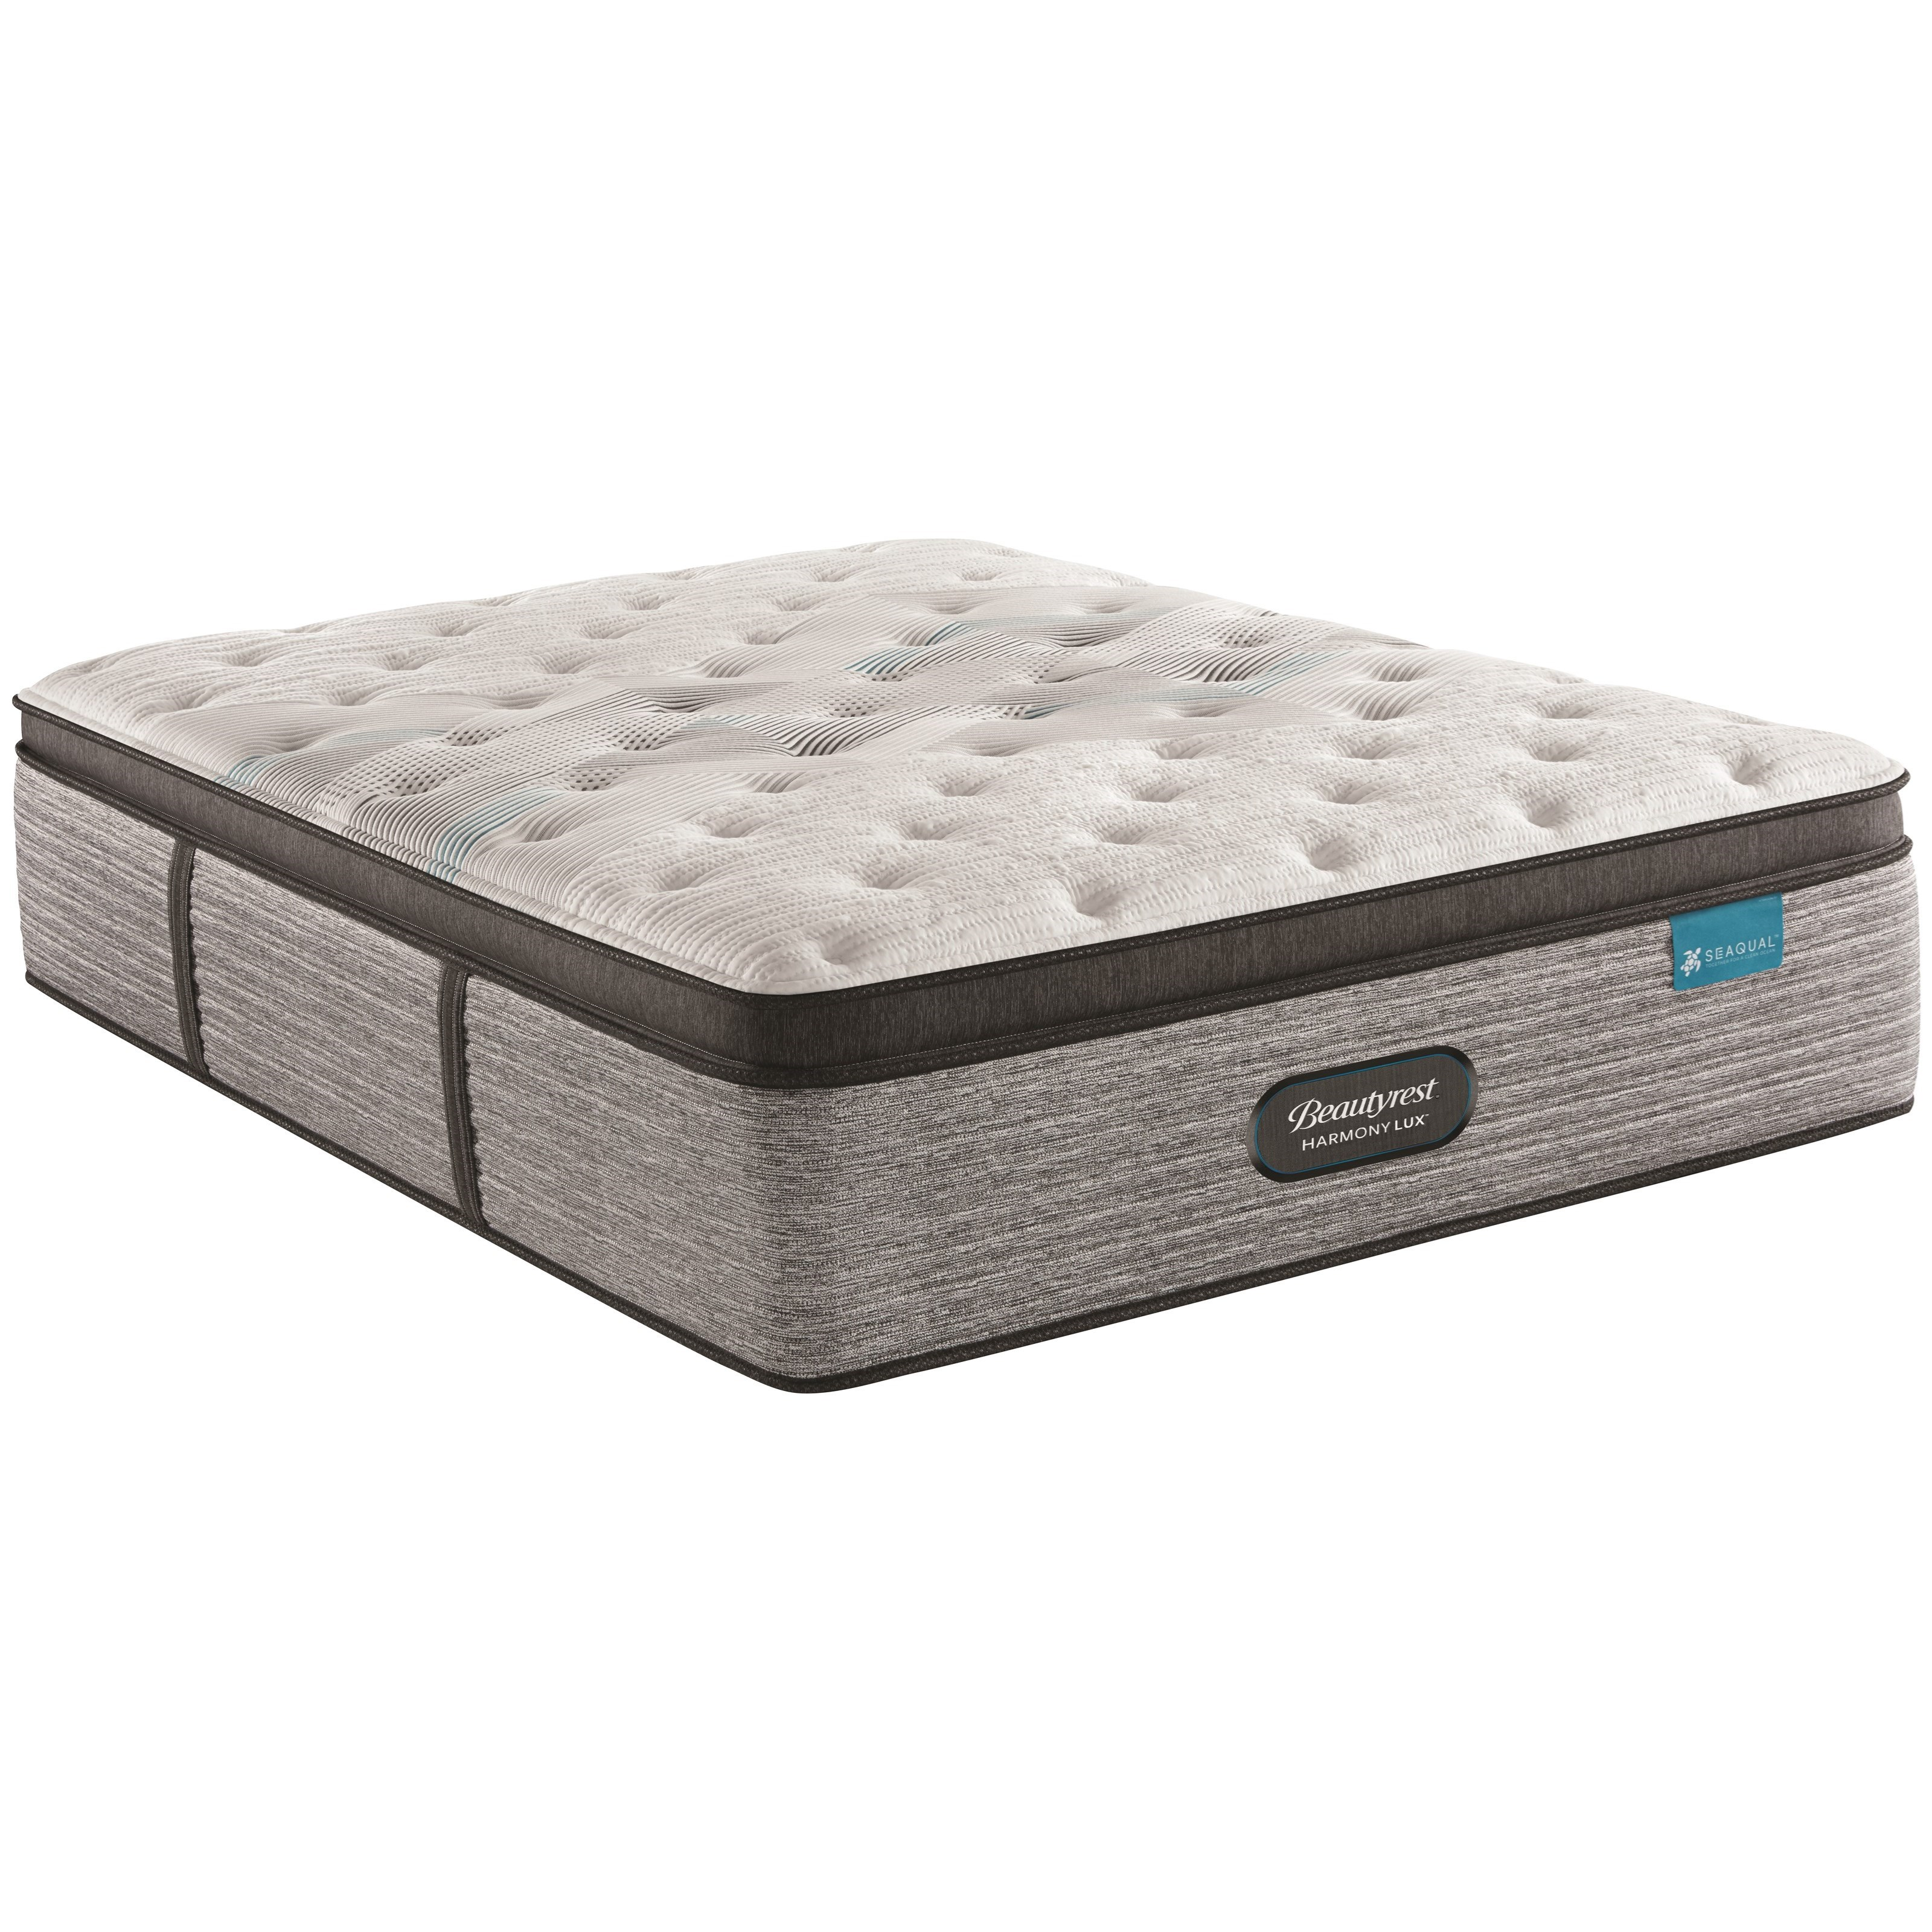 "Carbon Series Plush PT Cal King 15 3/4"" Plush Pillow Top Mattress by Beautyrest at Novello Home Furnishings"